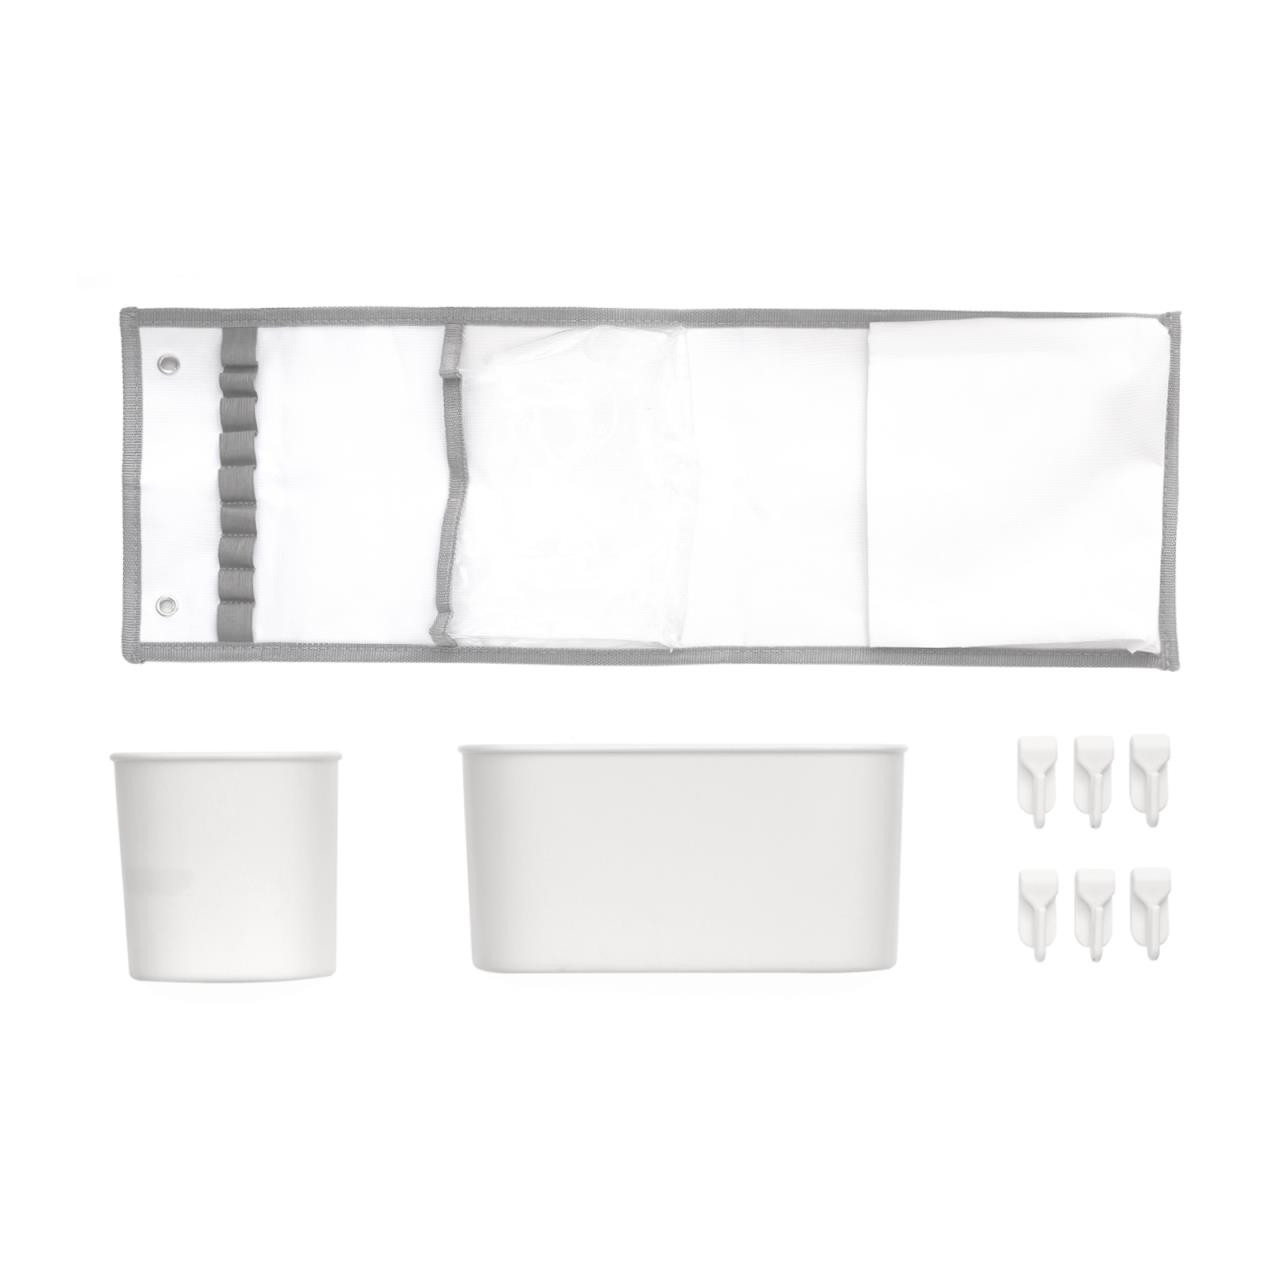 Cart Accessory Kit, We R Memory Keepers - 633356612988